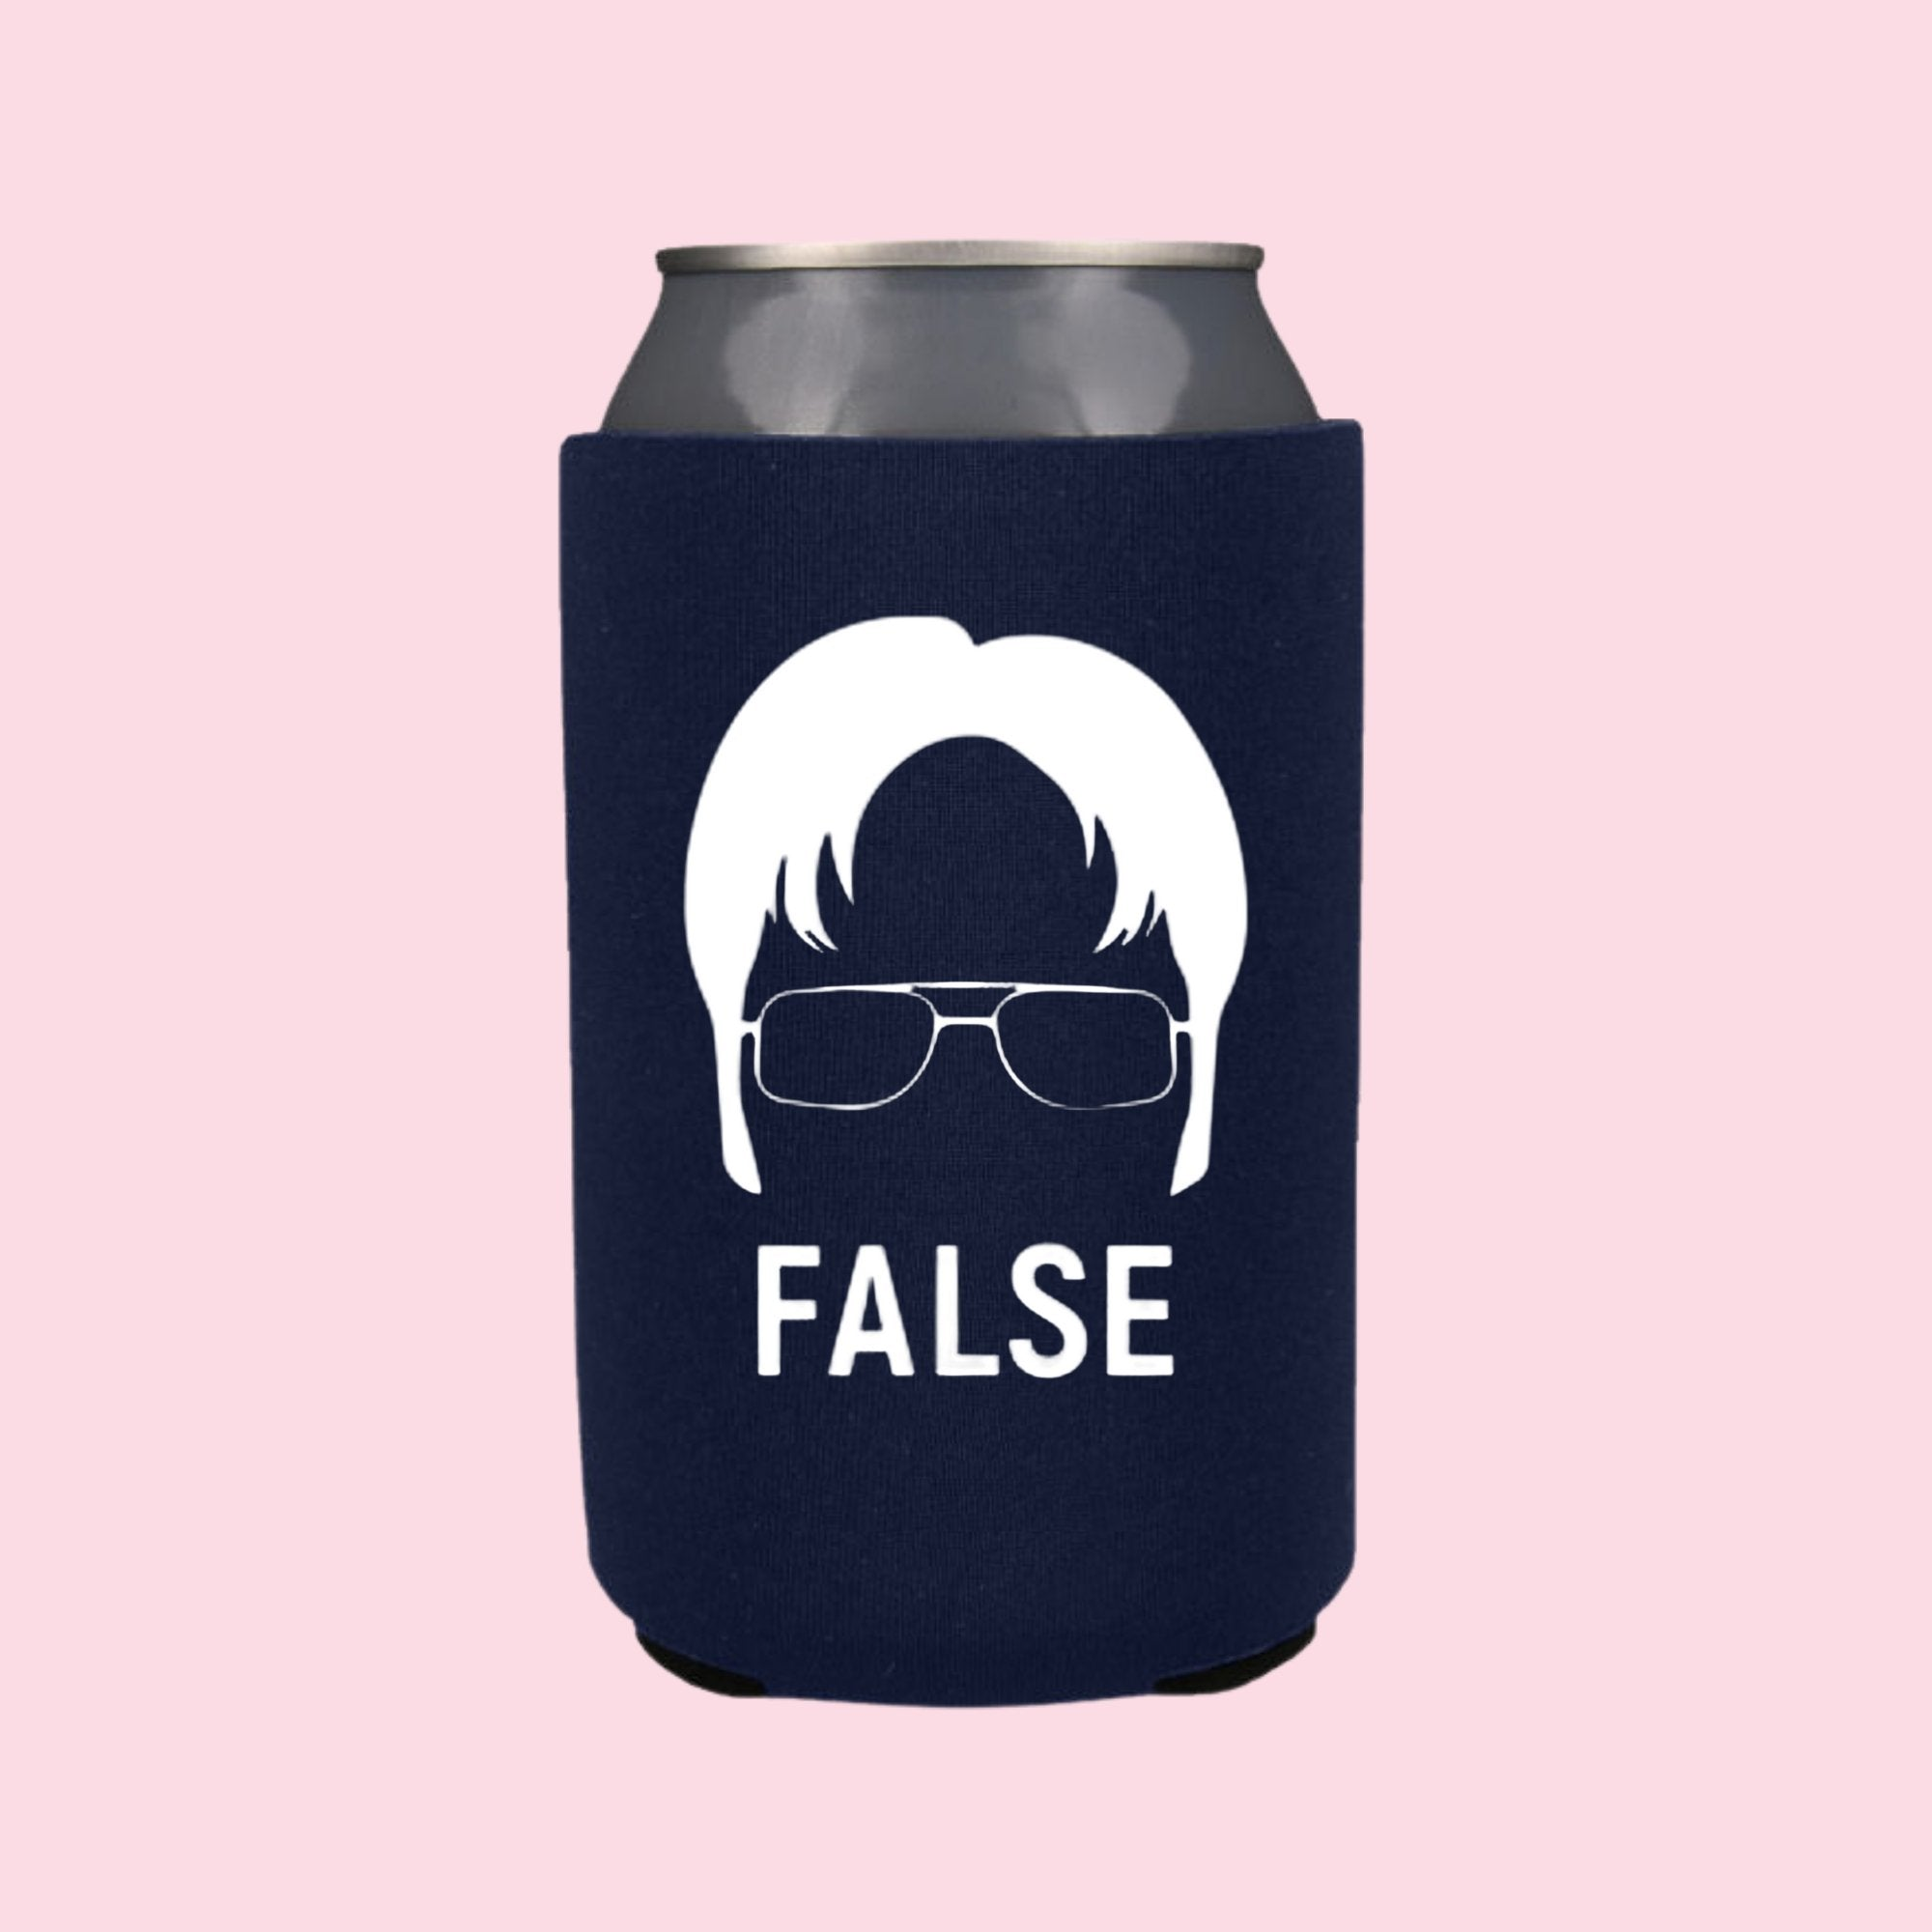 Dwight False Can Cooler - Sprinkled With Pink #bachelorette #custom #gifts